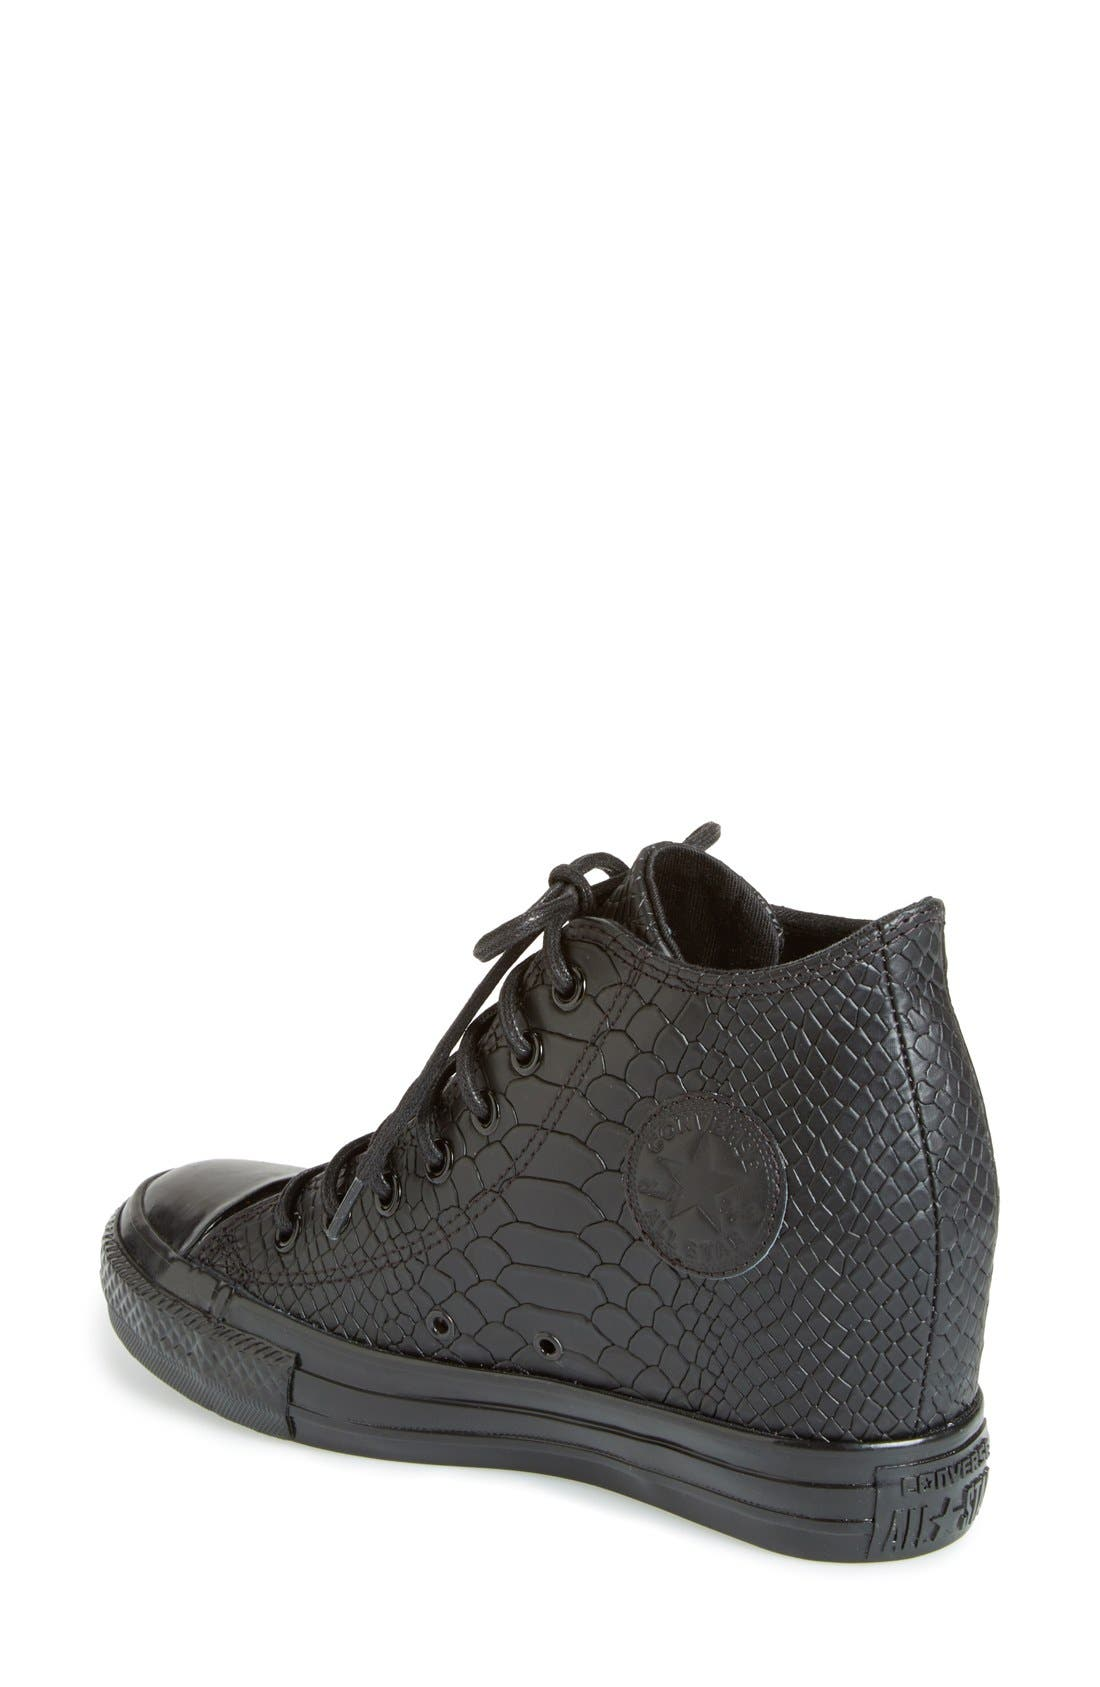 Chuck Taylor<sup>®</sup> All Star<sup>®</sup> 'Embossed Reptile' Wedge Sneaker,                             Alternate thumbnail 3, color,                             001